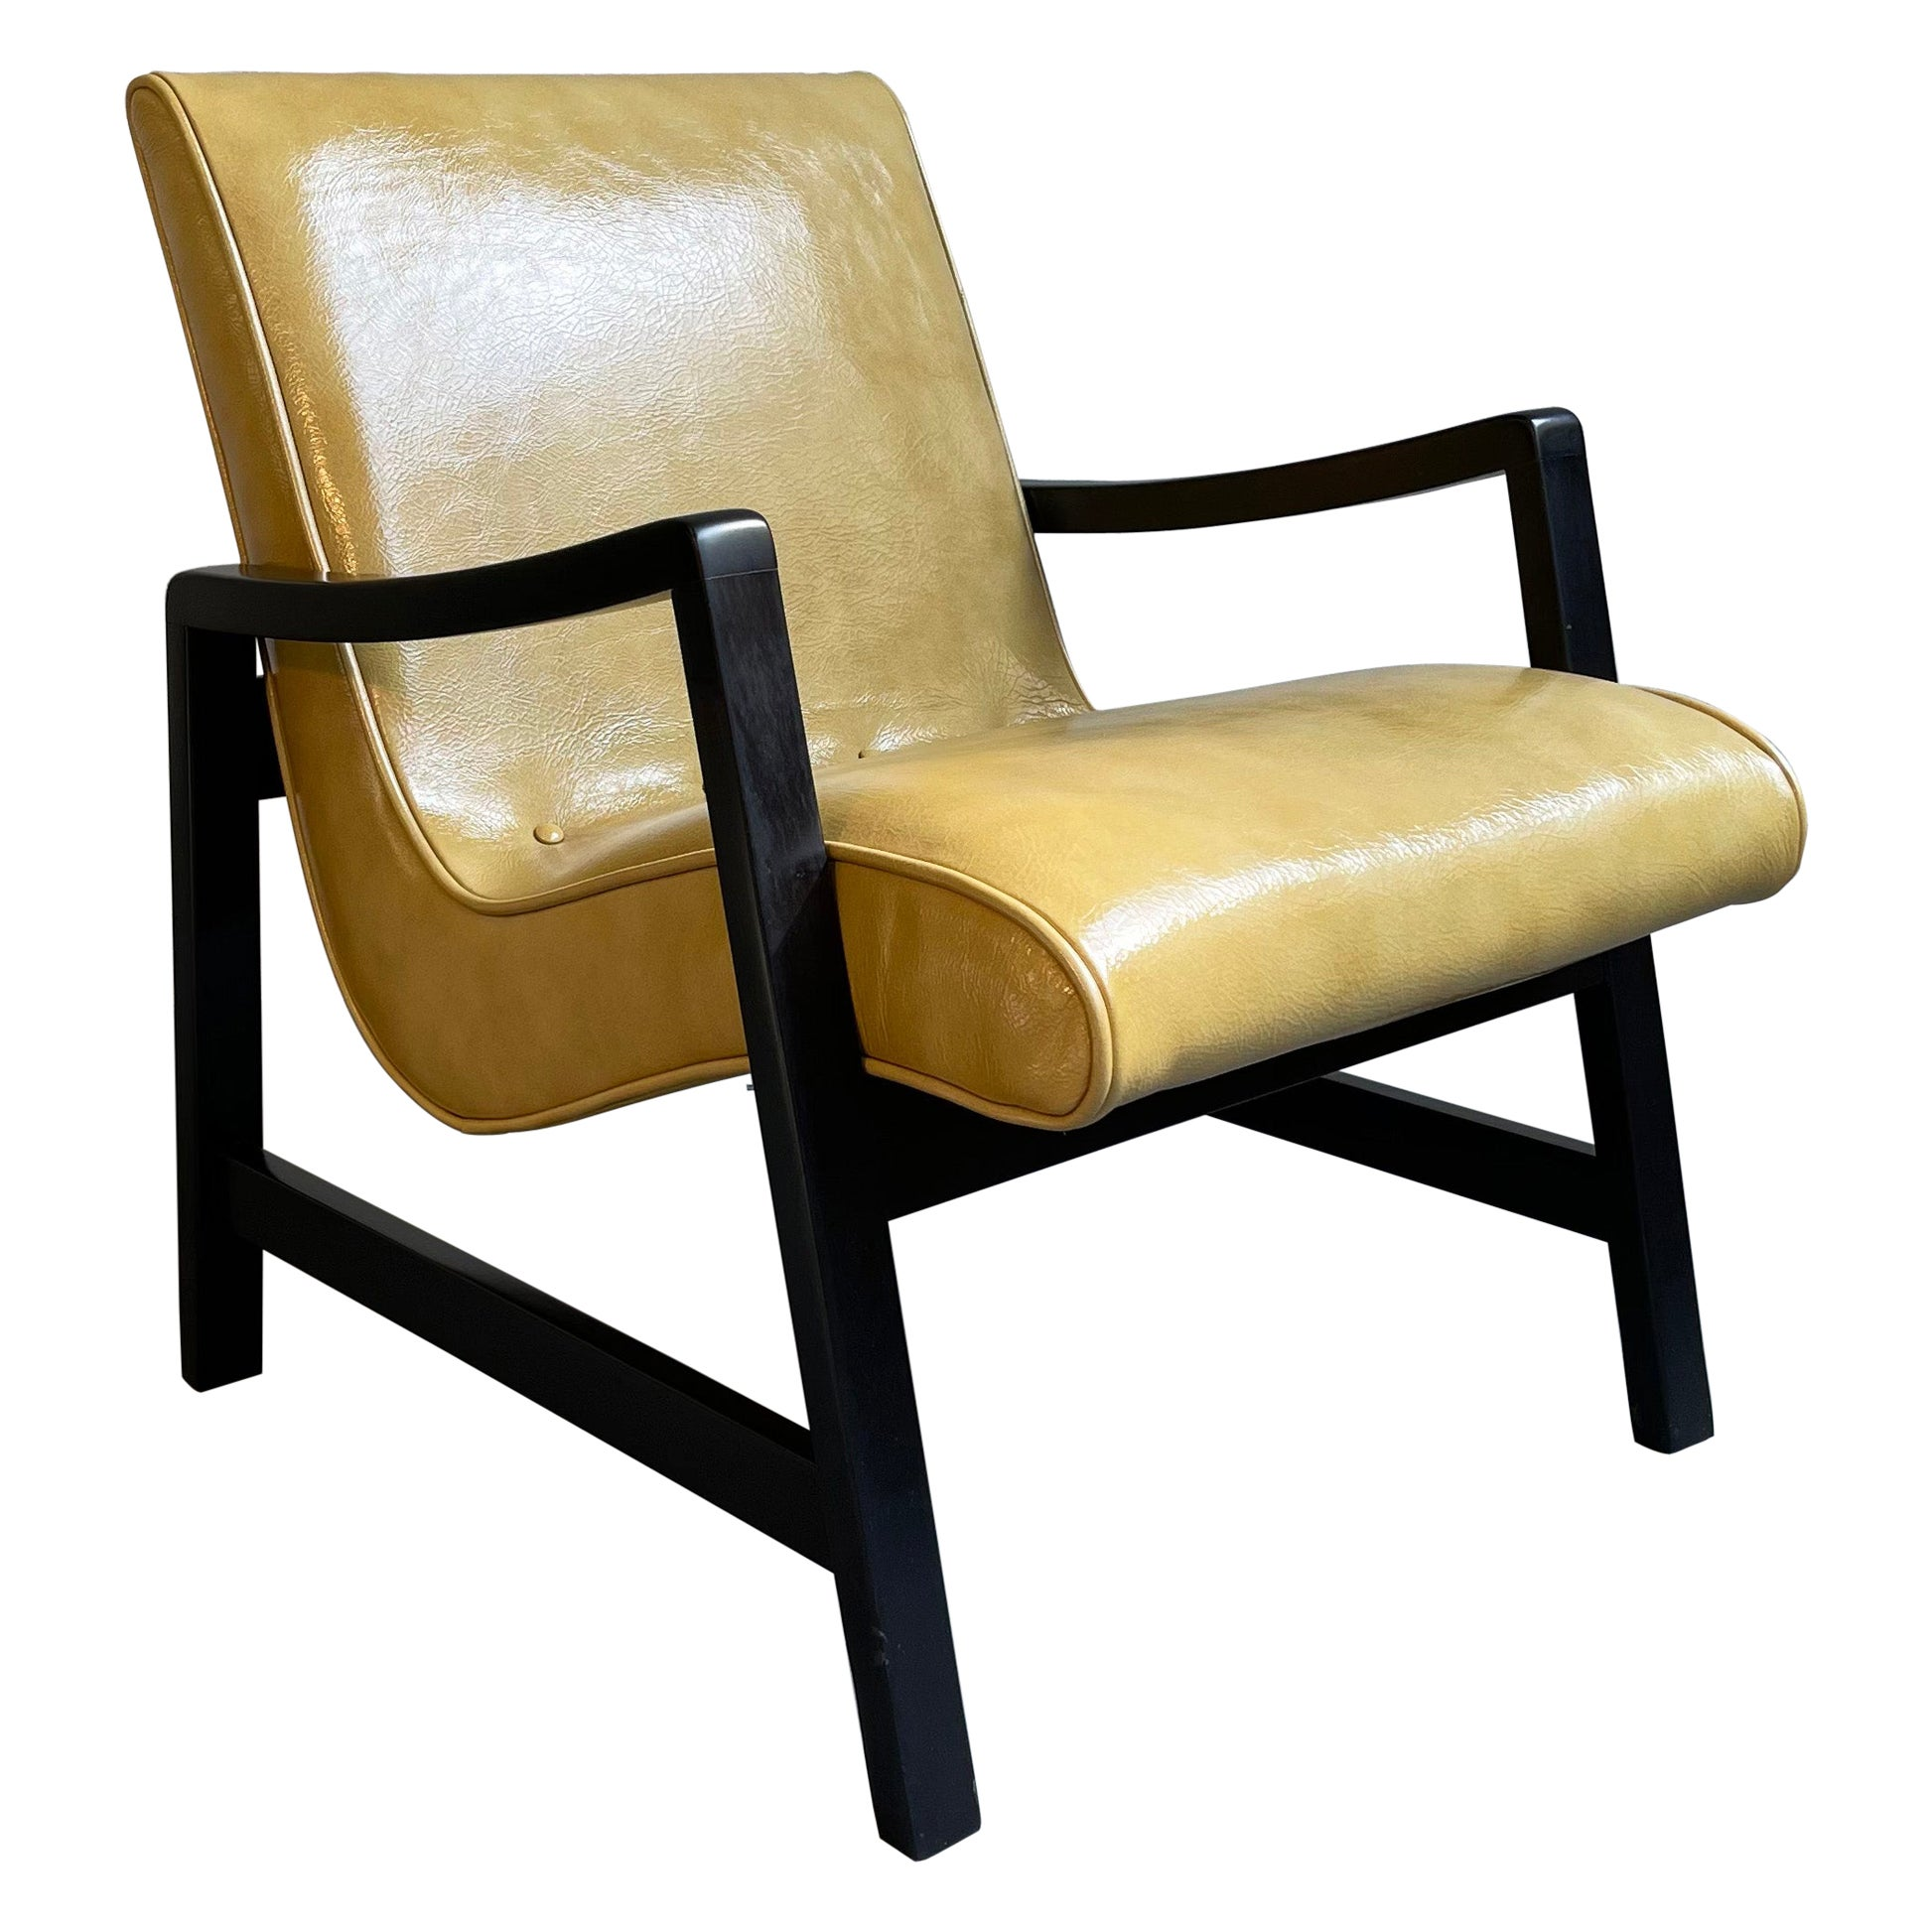 Mid-Century Modern Scoop Leather Lounge Chair by Jens Risom